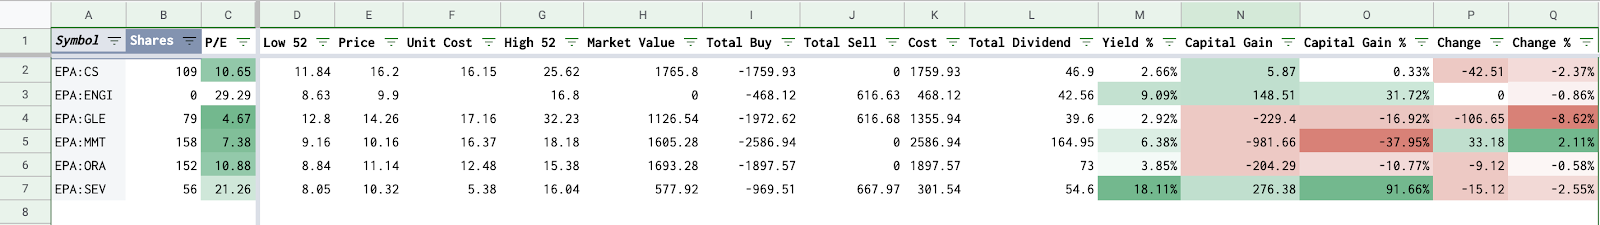 The Positions sheet: Contribution of each stock in the portfolio.